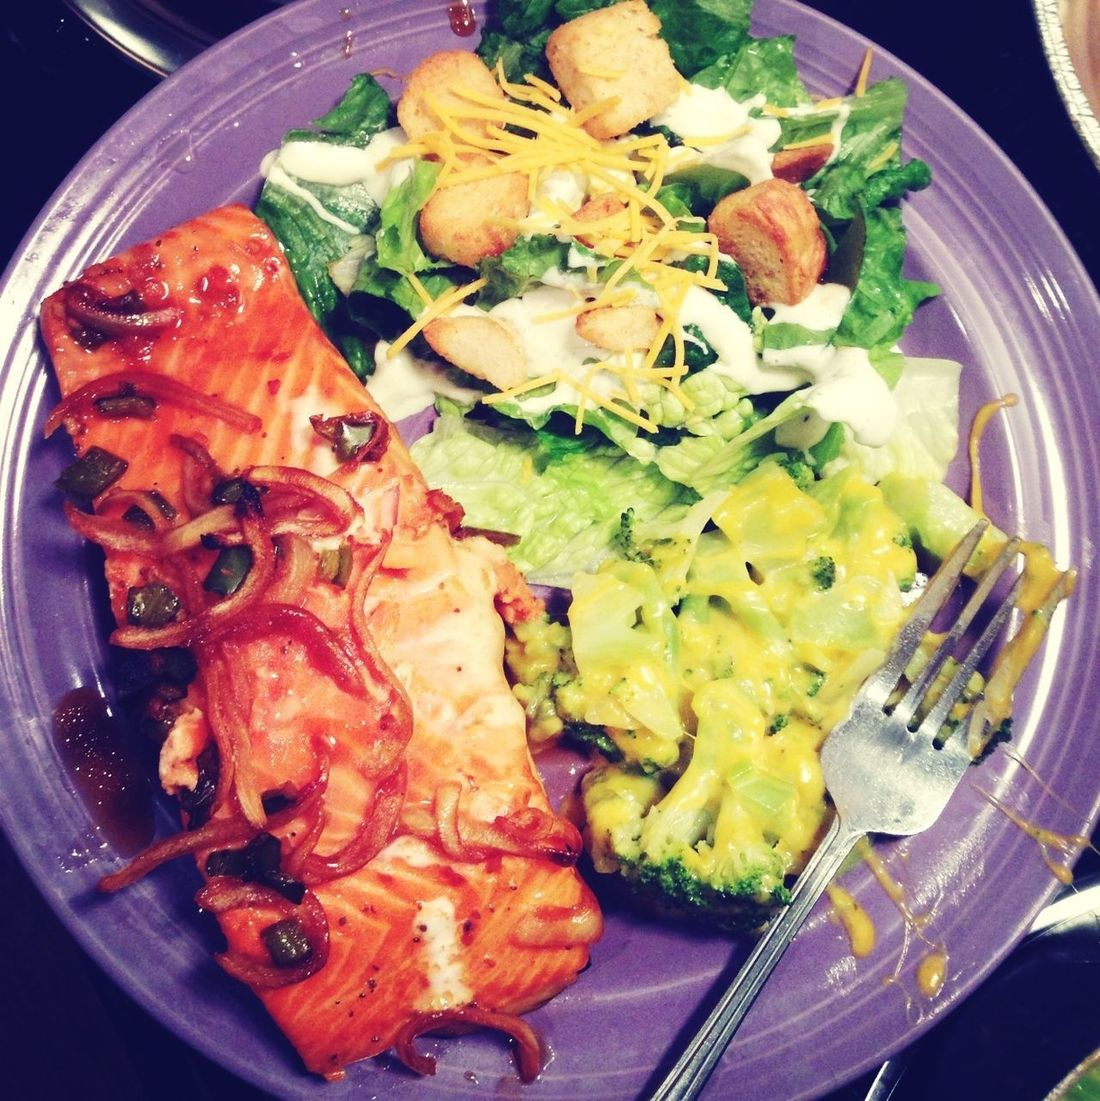 Salmon, salad & cheese broccoli